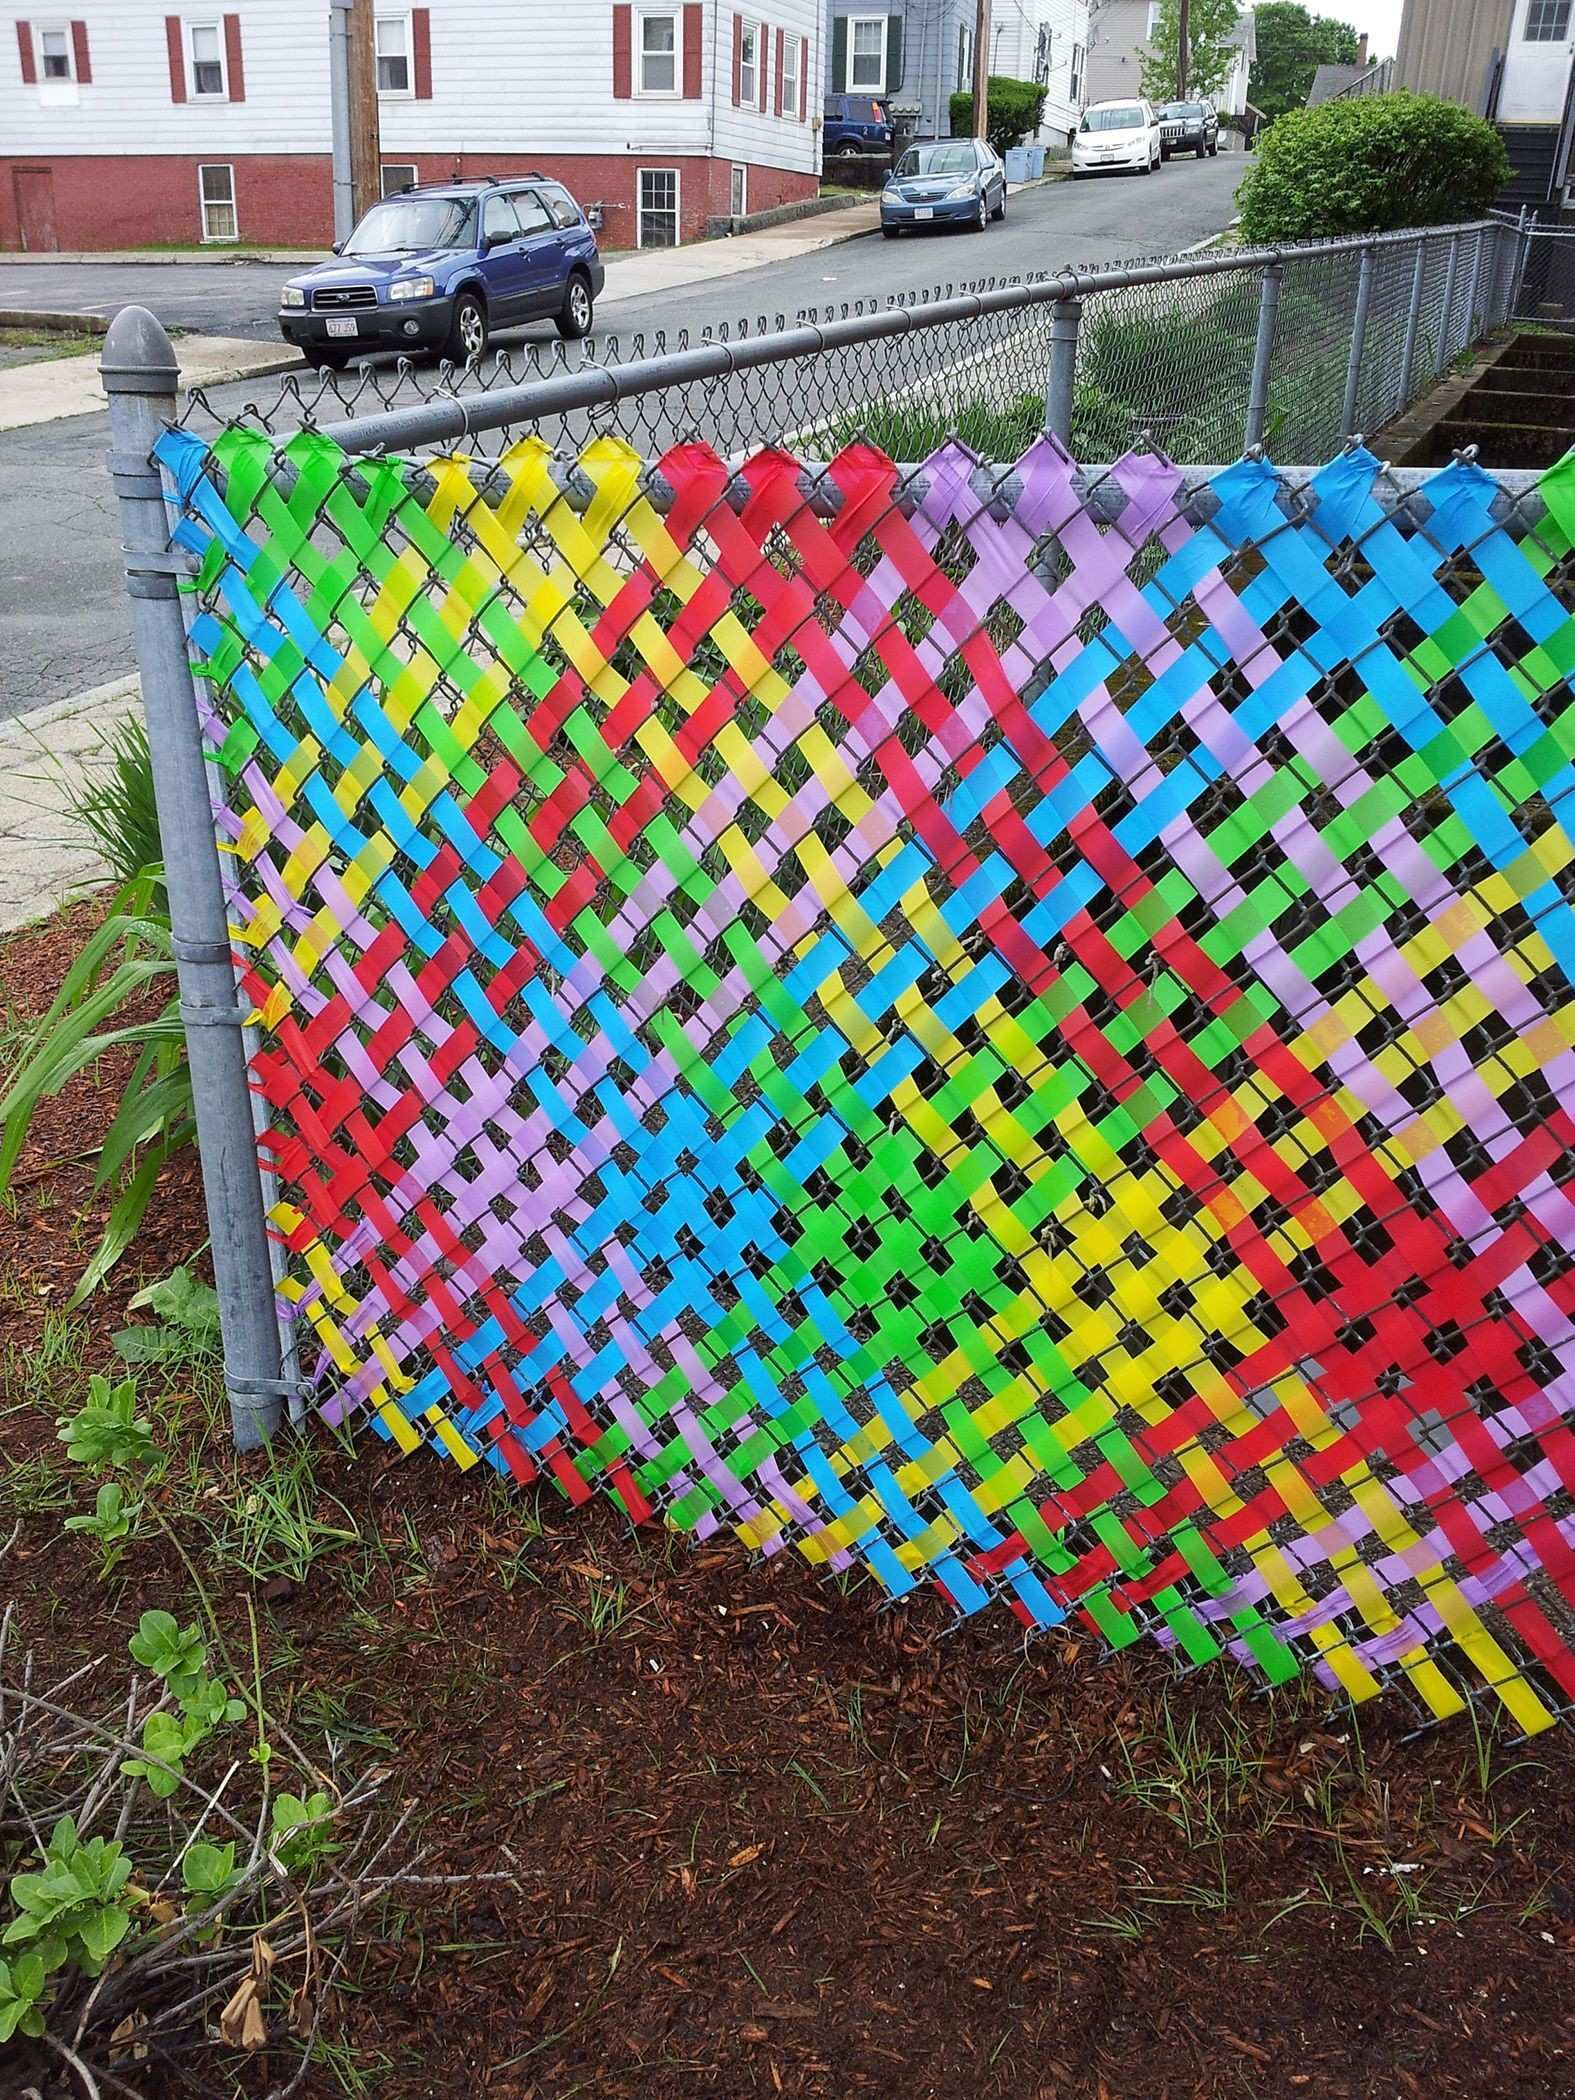 Picture of Fence with Rainbow Weaving